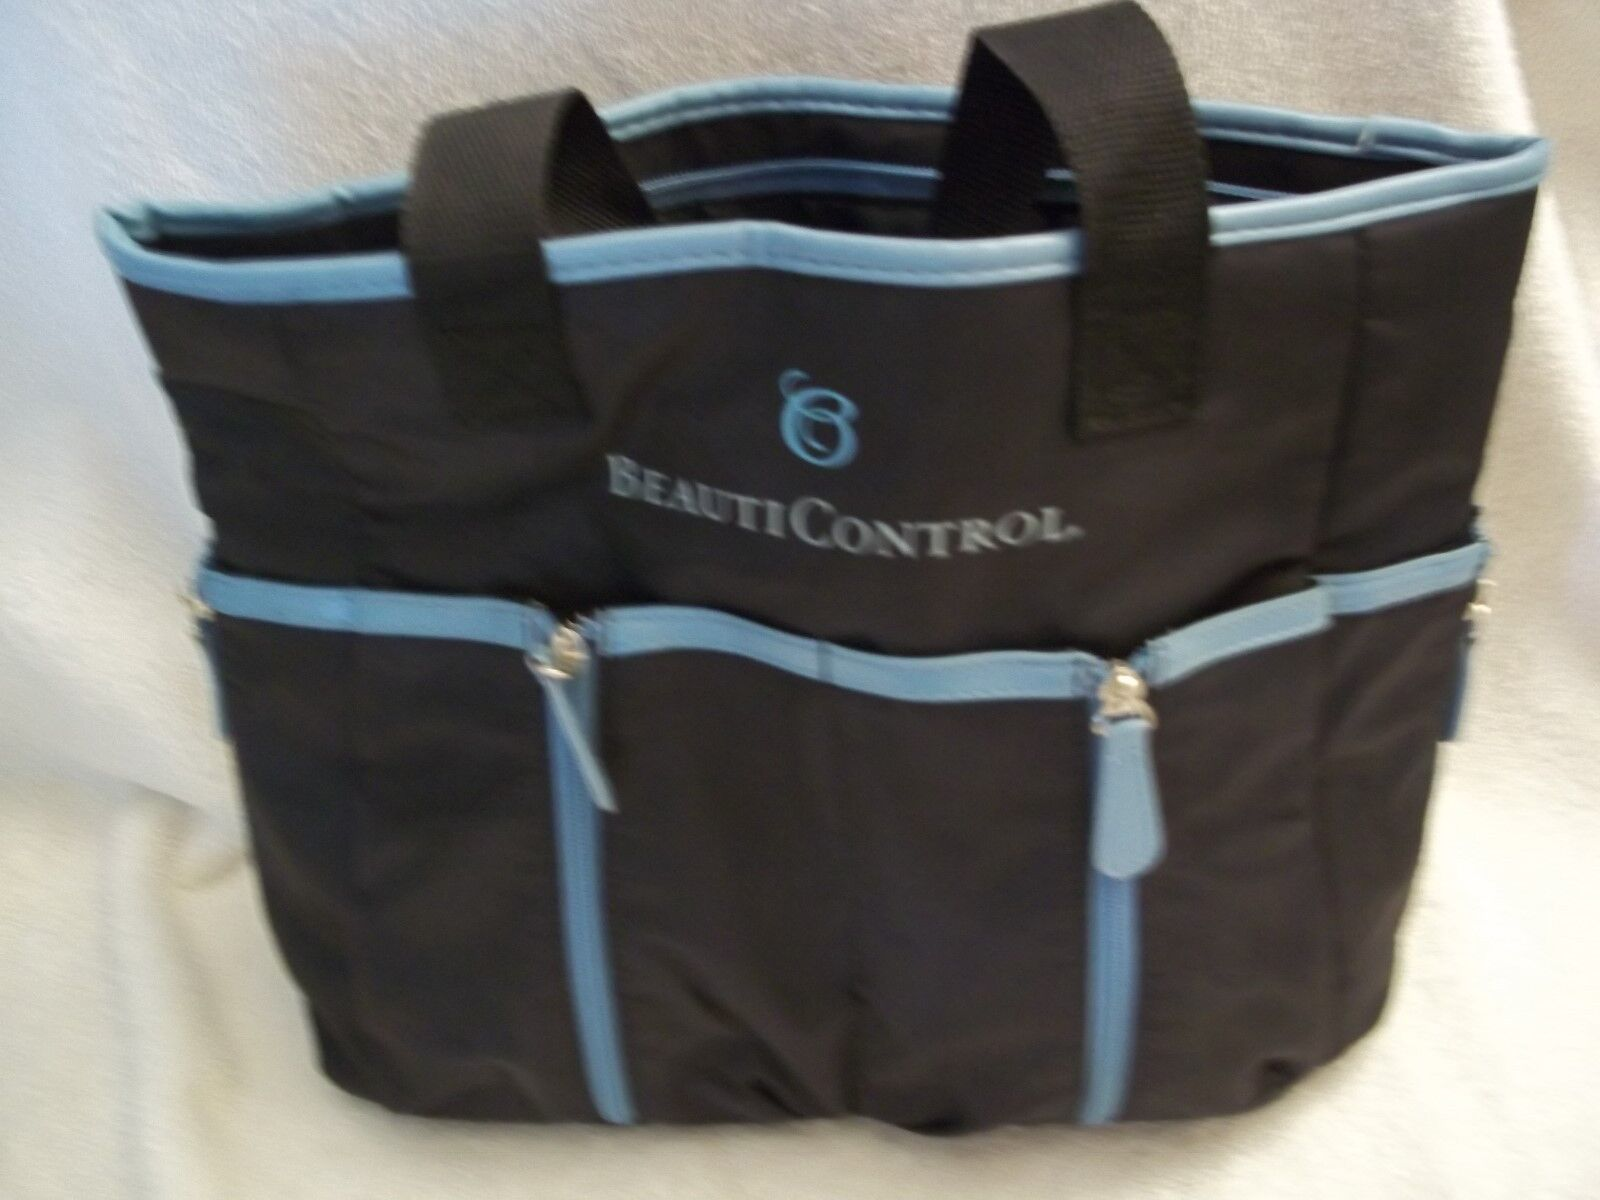 Beauticontrol Tote Bag Black With Pockets Inside & Outside